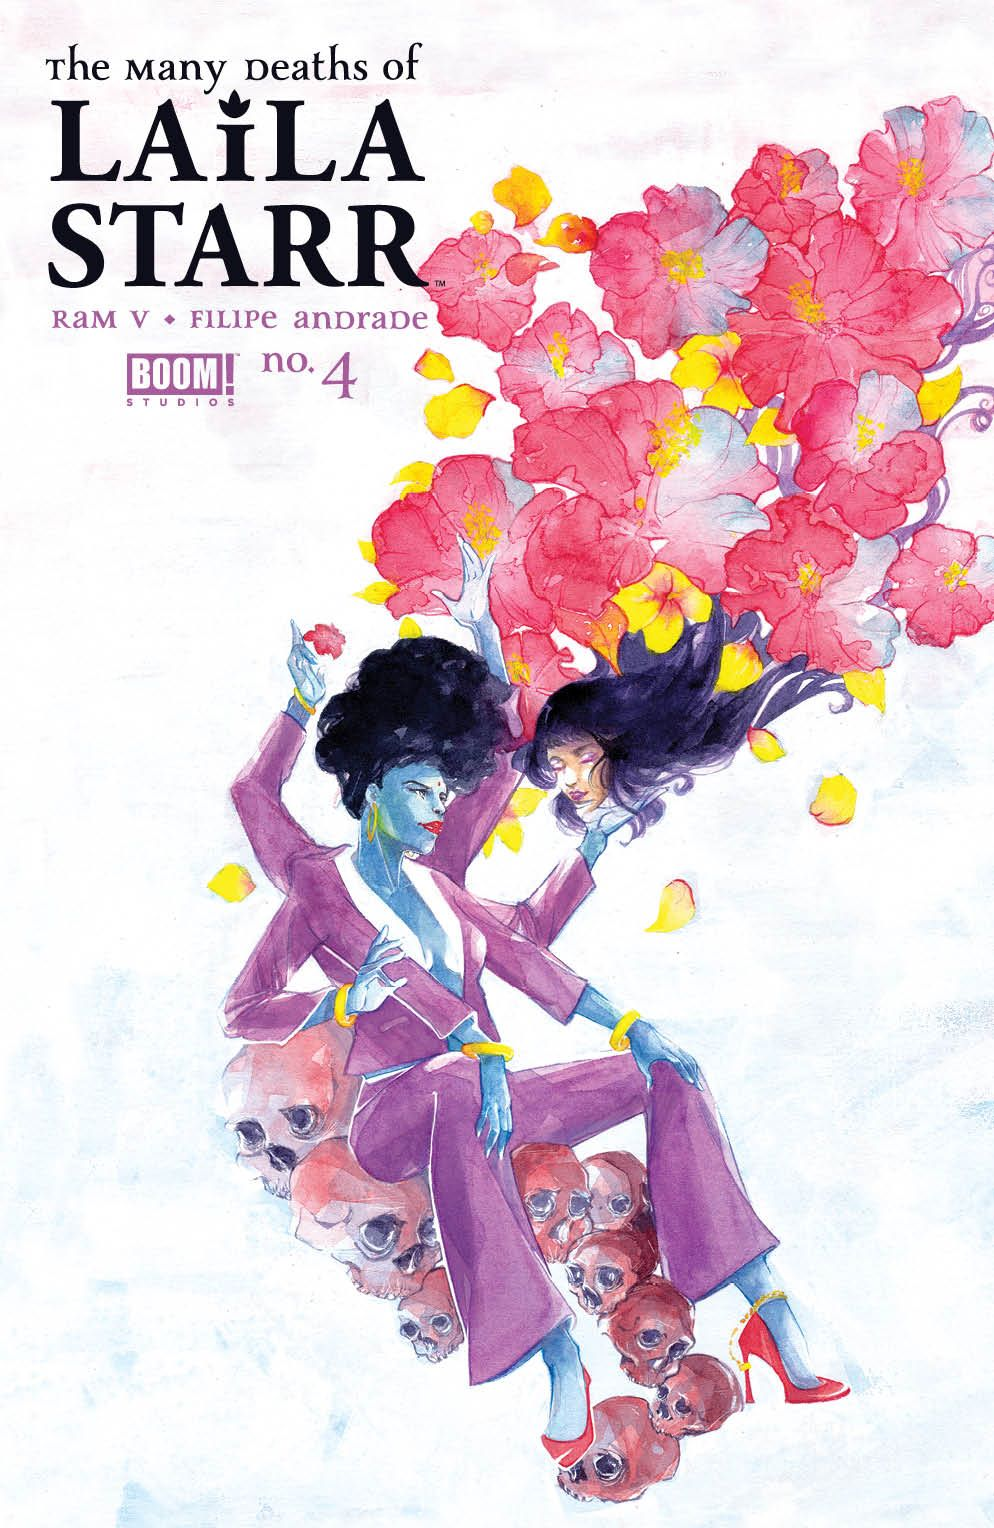 ManyDeathsLailaStarr_004_Cover_B_Foil ComicList Previews: MANY DEATHS OF LAILA STARR #4 (OF 5)